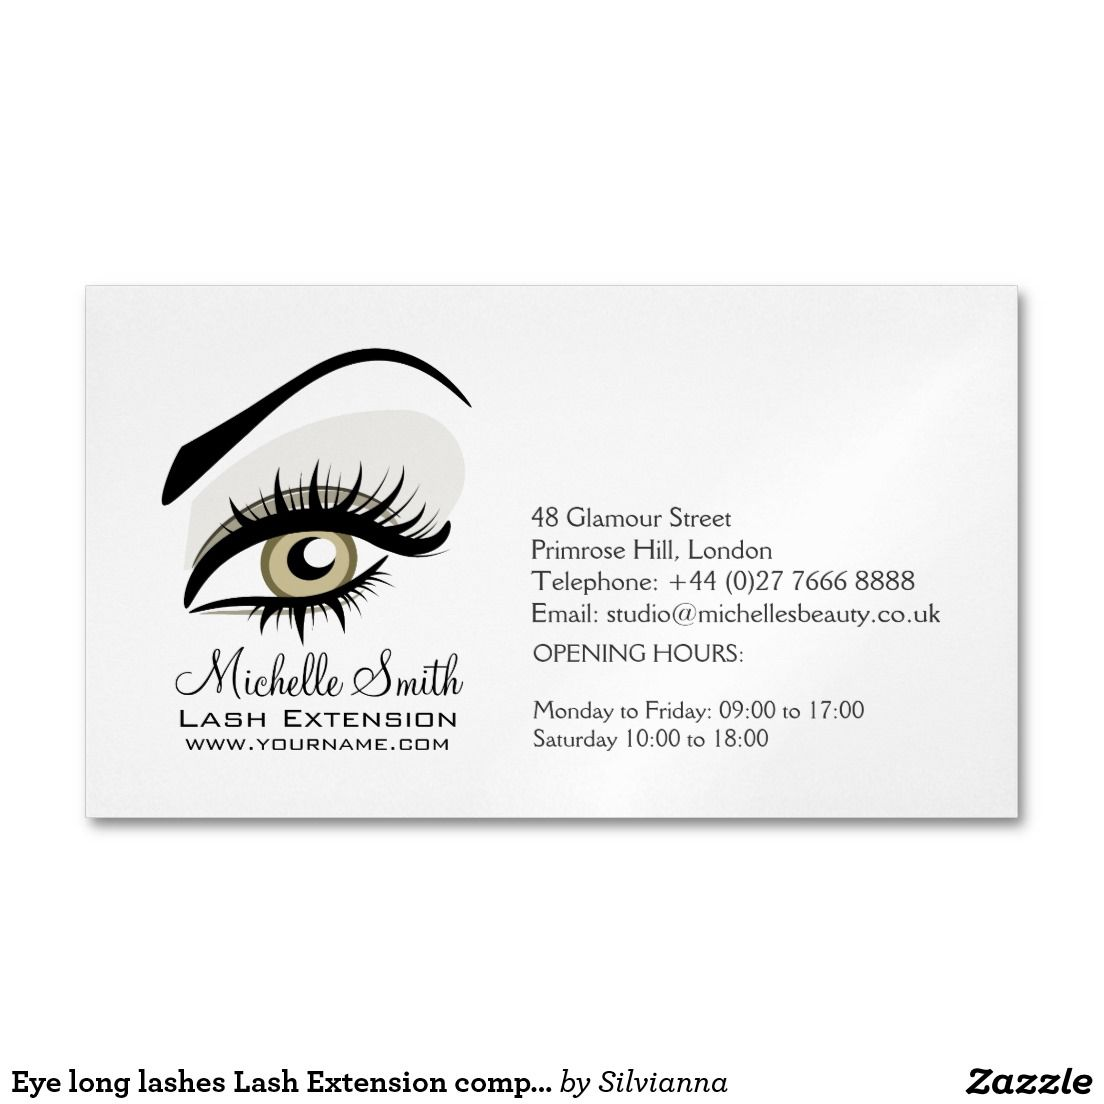 Eyelash extension business cards business card design inspiration for Eyelash extension business cards